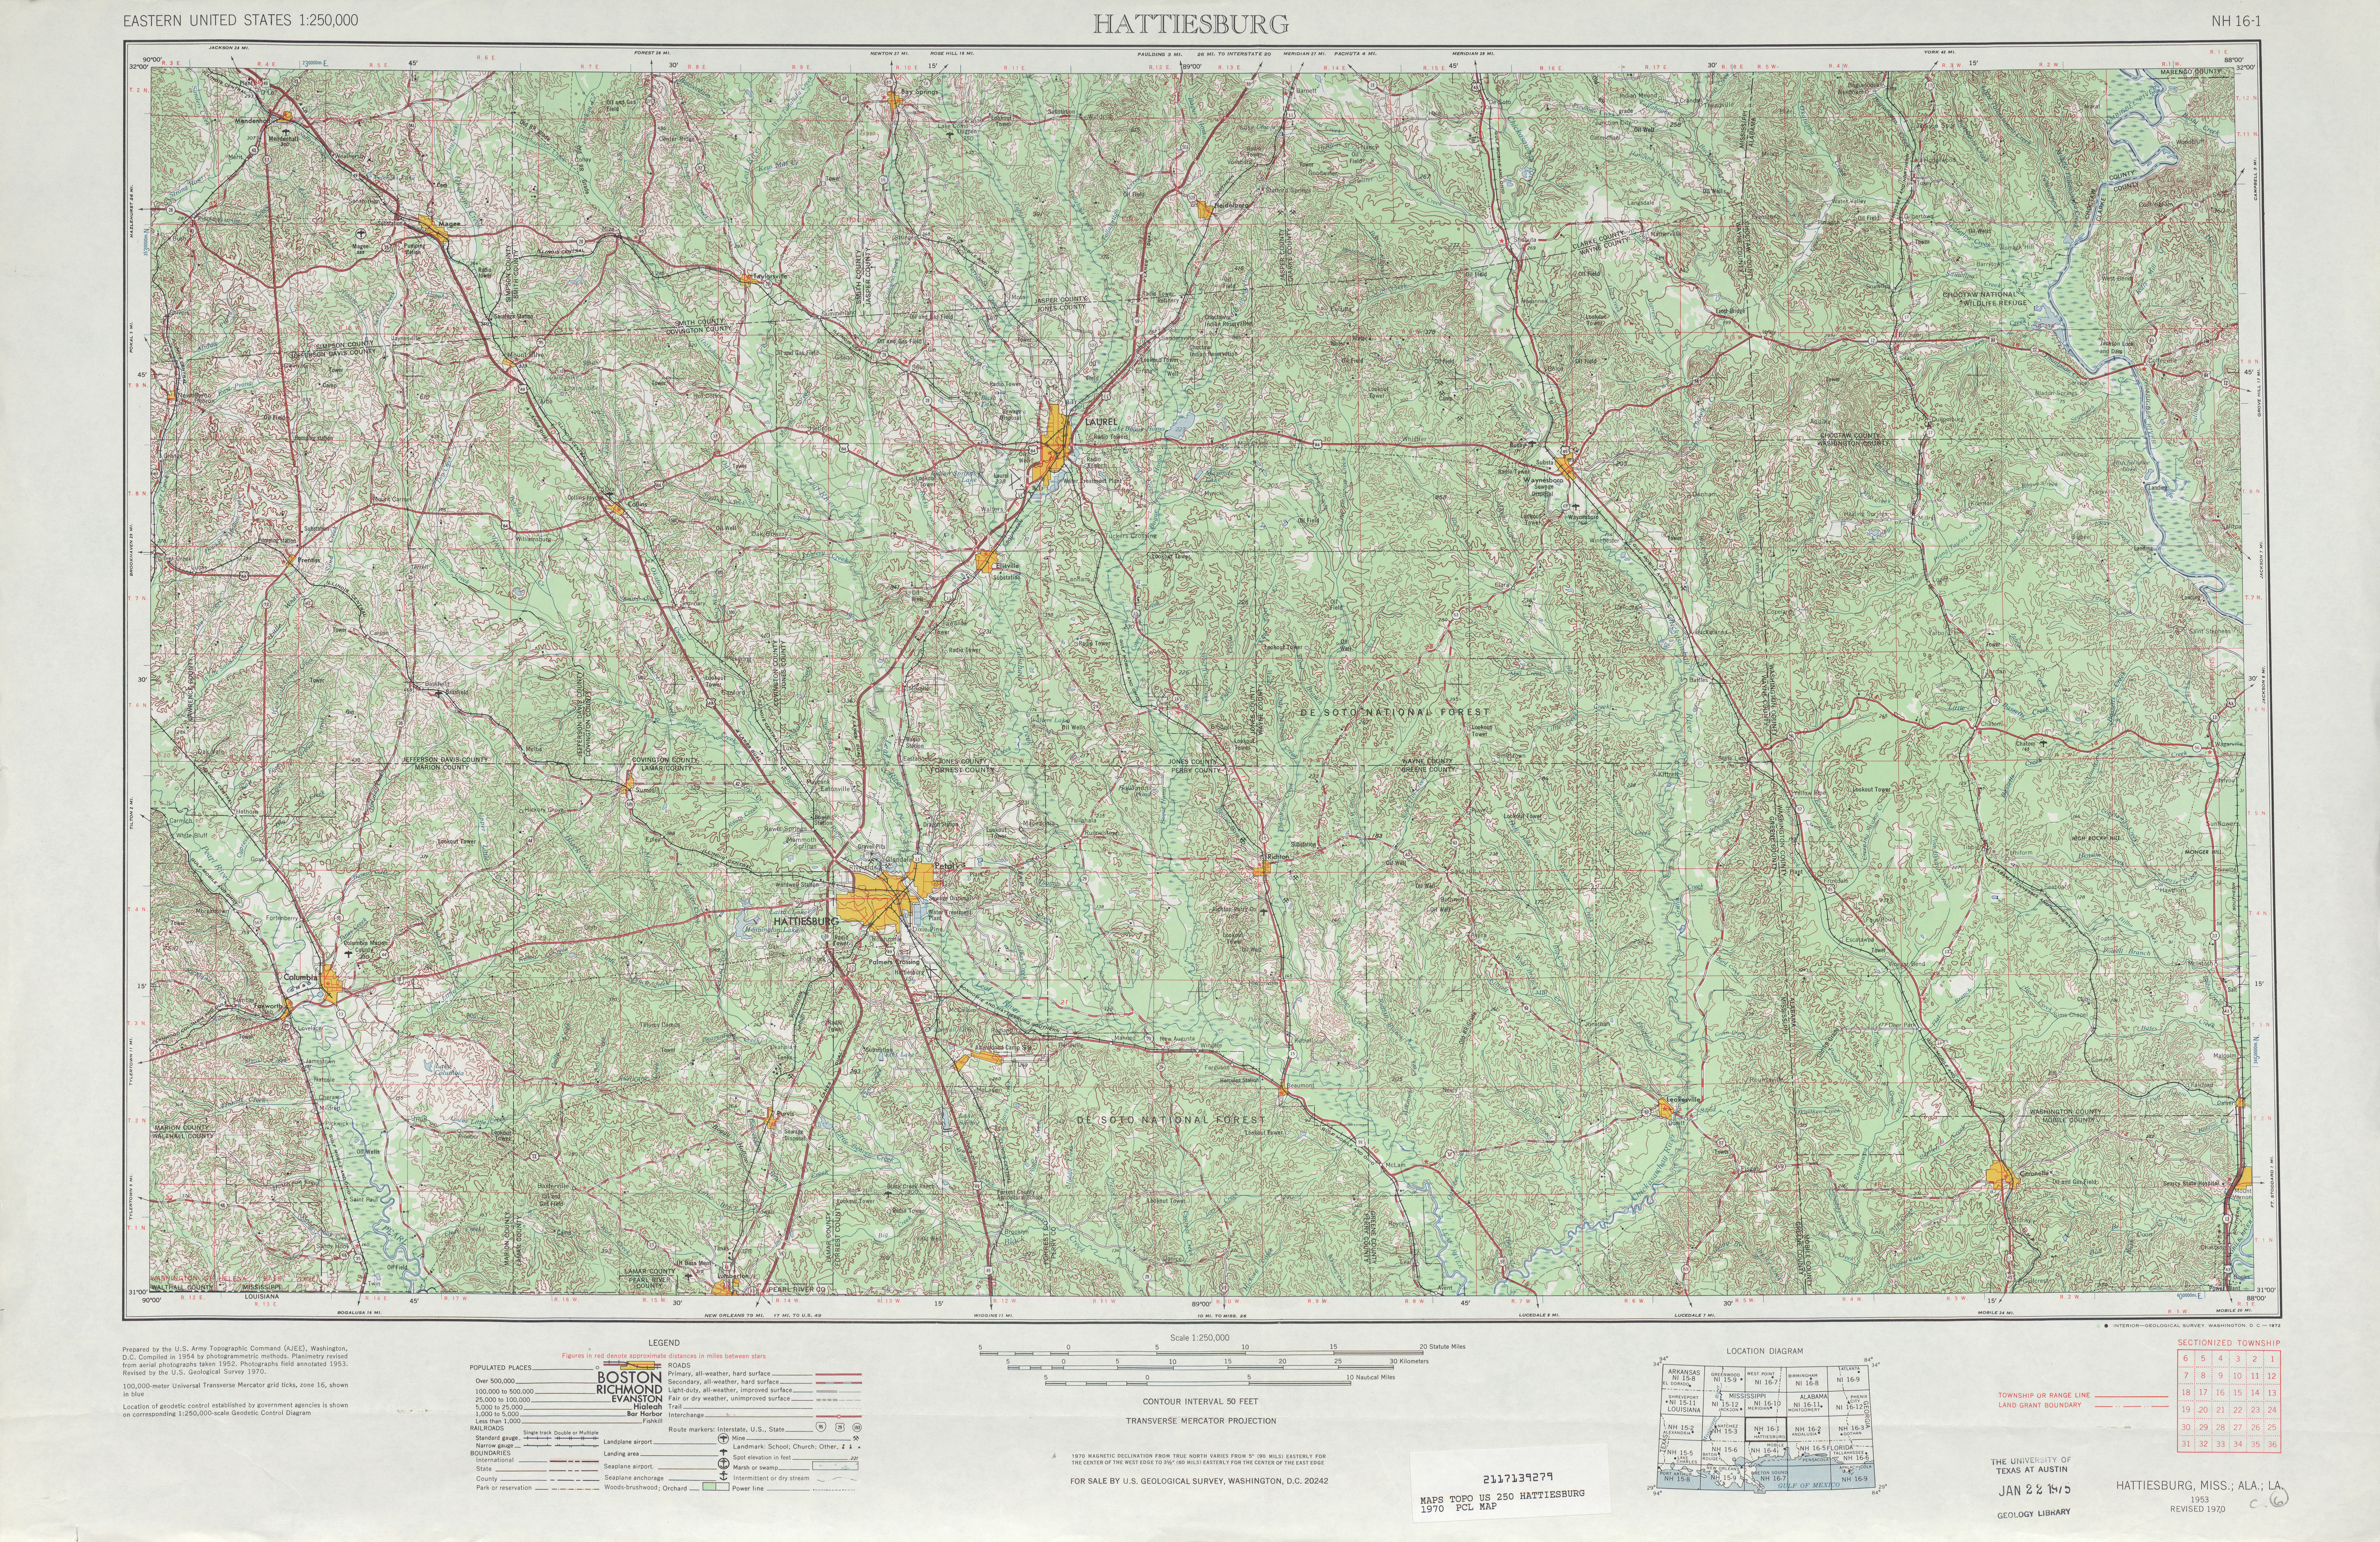 Louisiana Topographic Maps PerryCastañeda Map Collection UT - Topographic map of eastern us